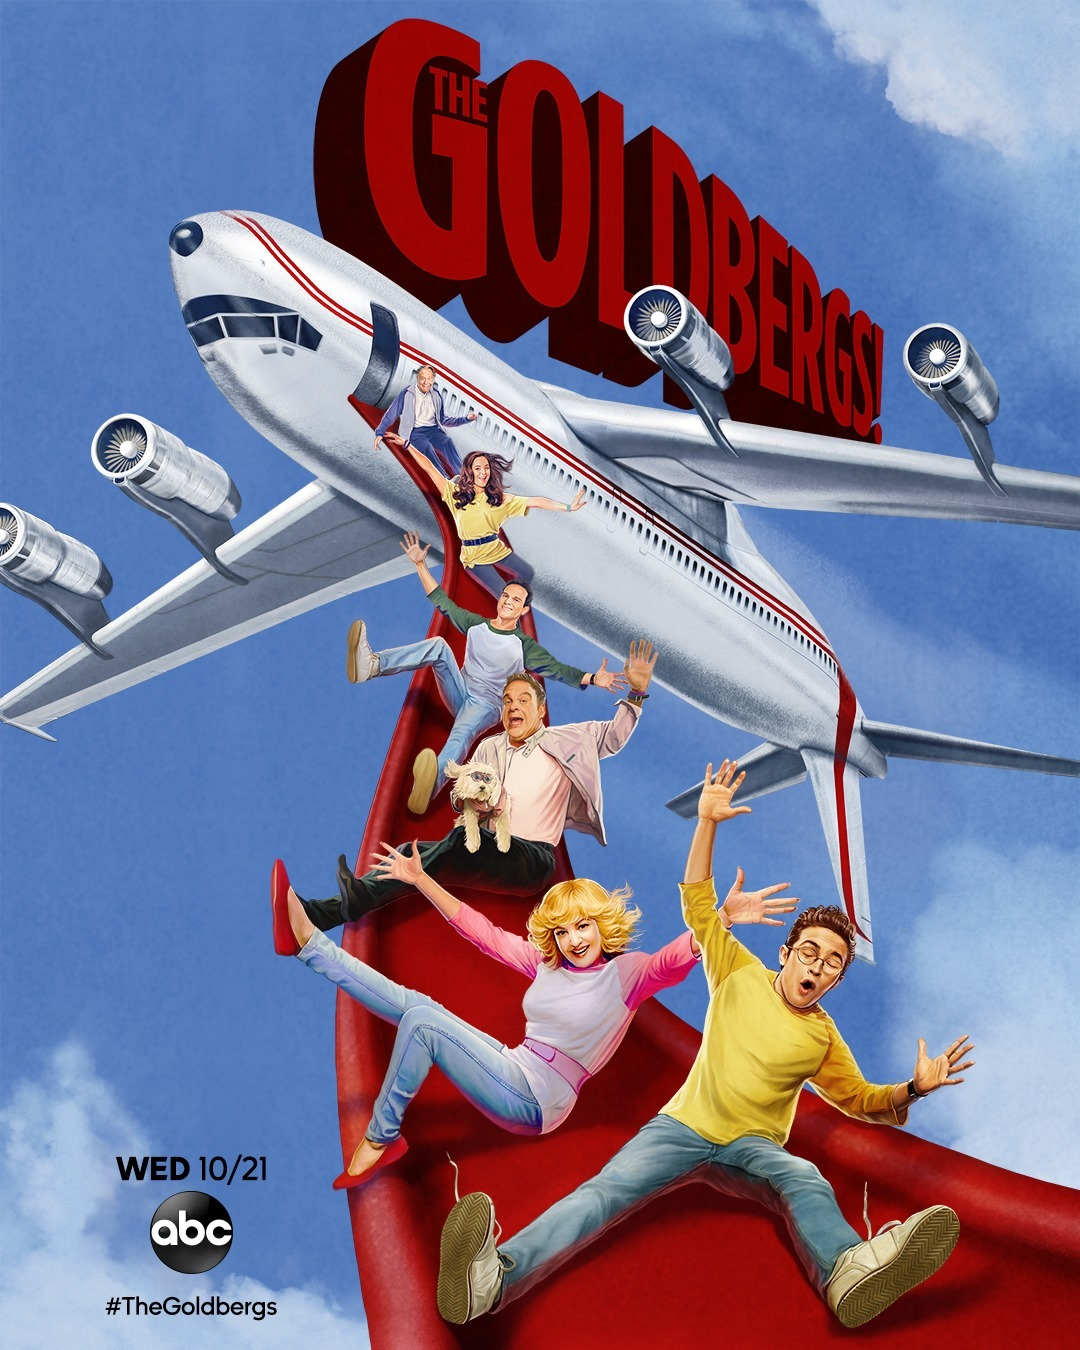 The.Goldbergs.2013.S08E08.720p.HDTV.x264-SYNCOPY